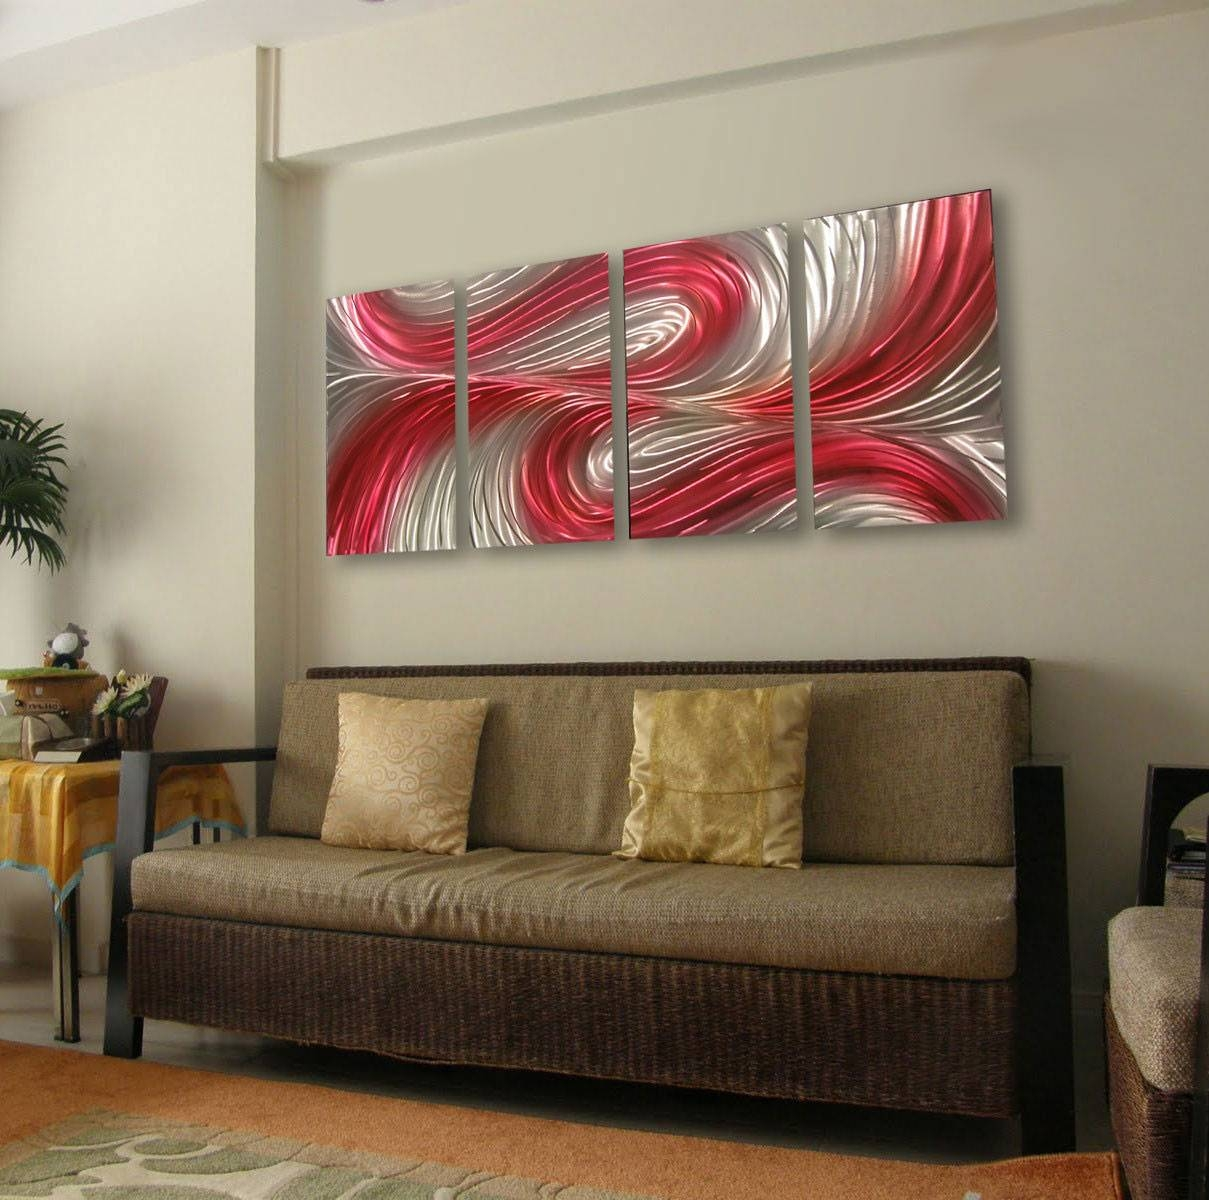 Classy Wall Art For Living Room Painting On Decorating Home Ideas Regarding Most Recently Released Classy Wall Art (View 5 of 15)